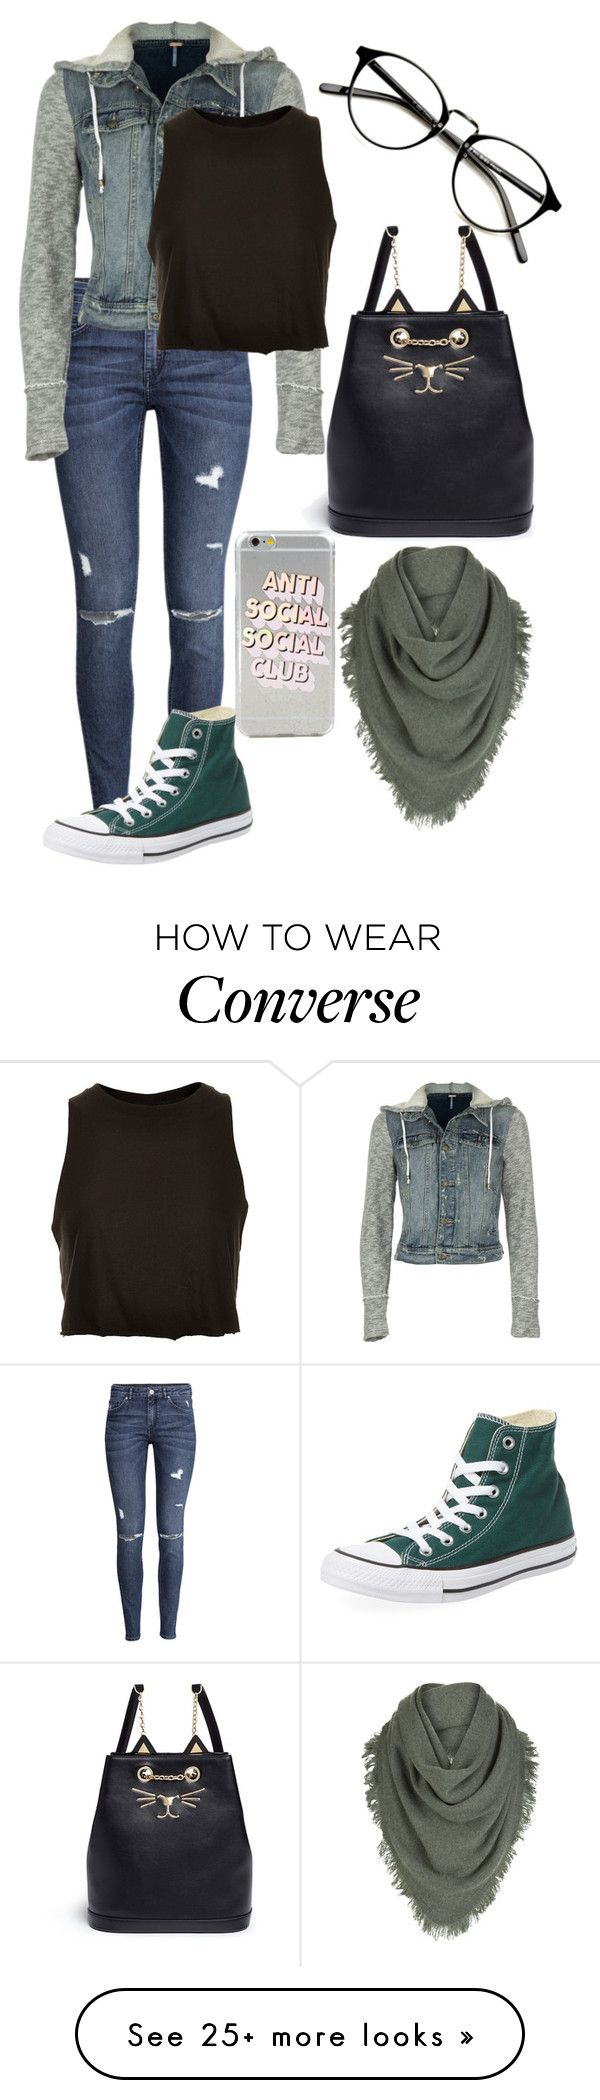 """Untitled #885"" by mriss-abbrie on Polyvore featuring H&M, Free People, Topshop, Charlotte Olympia, Converse and White + Warren"